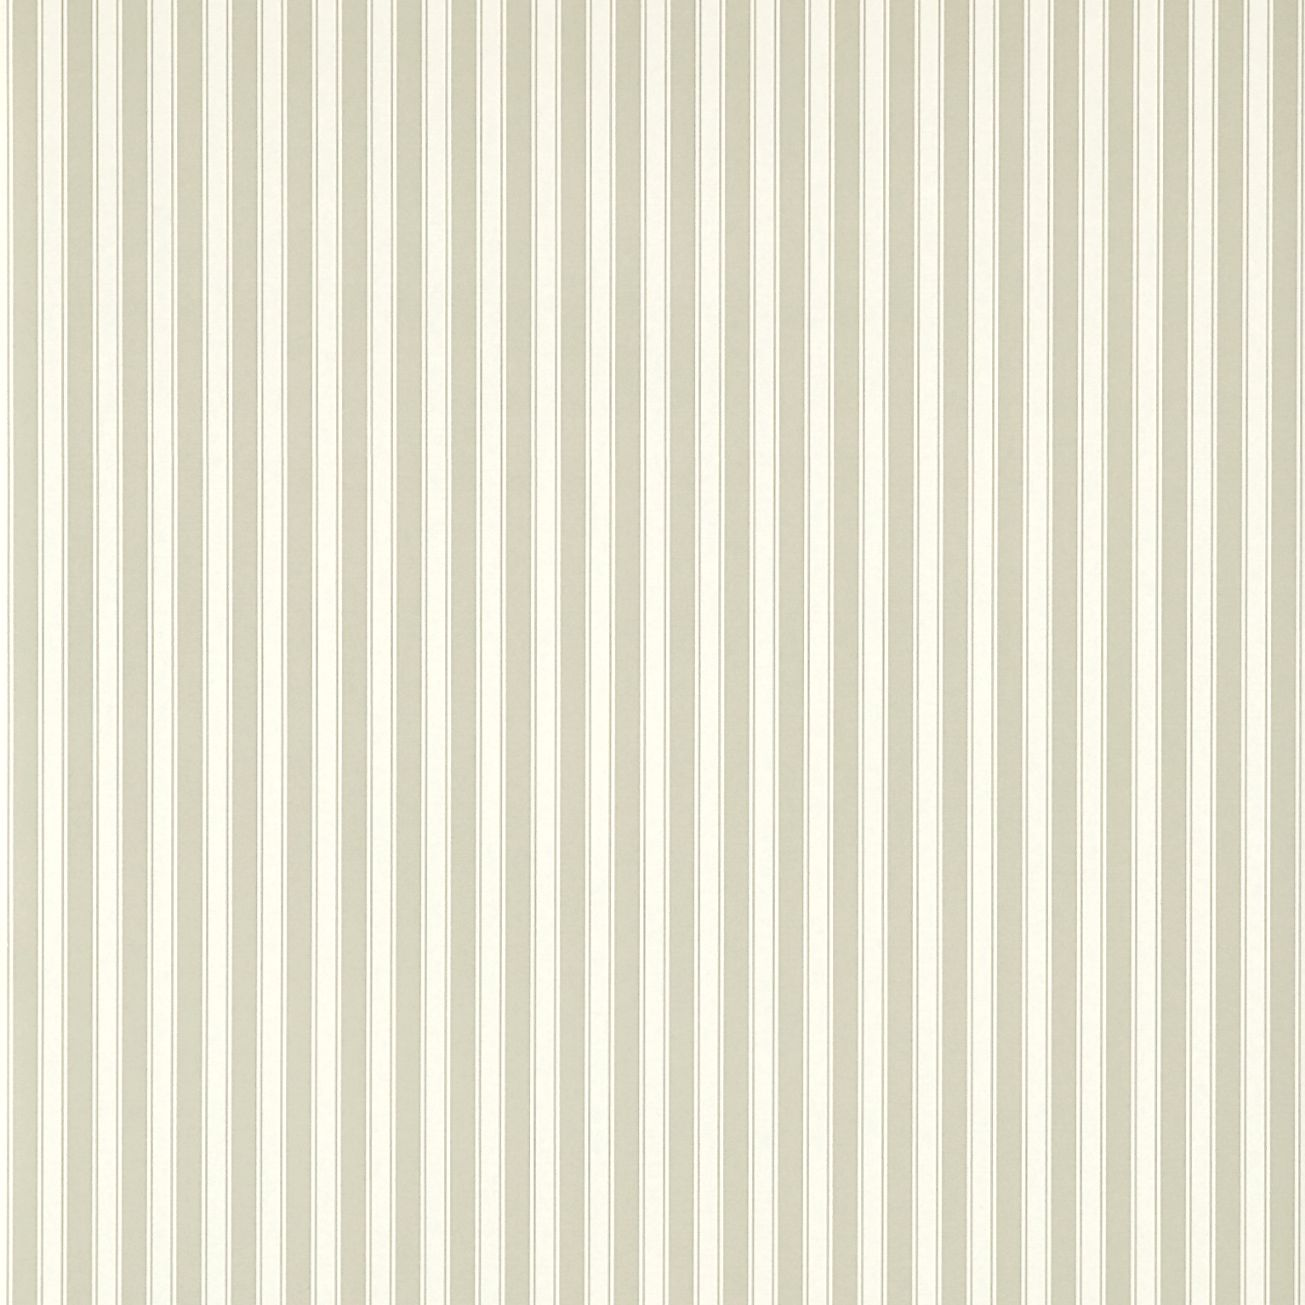 Stripe Wallpaper Caverley Wallpaper Collection Sanderson Wallpaper 1305x1305